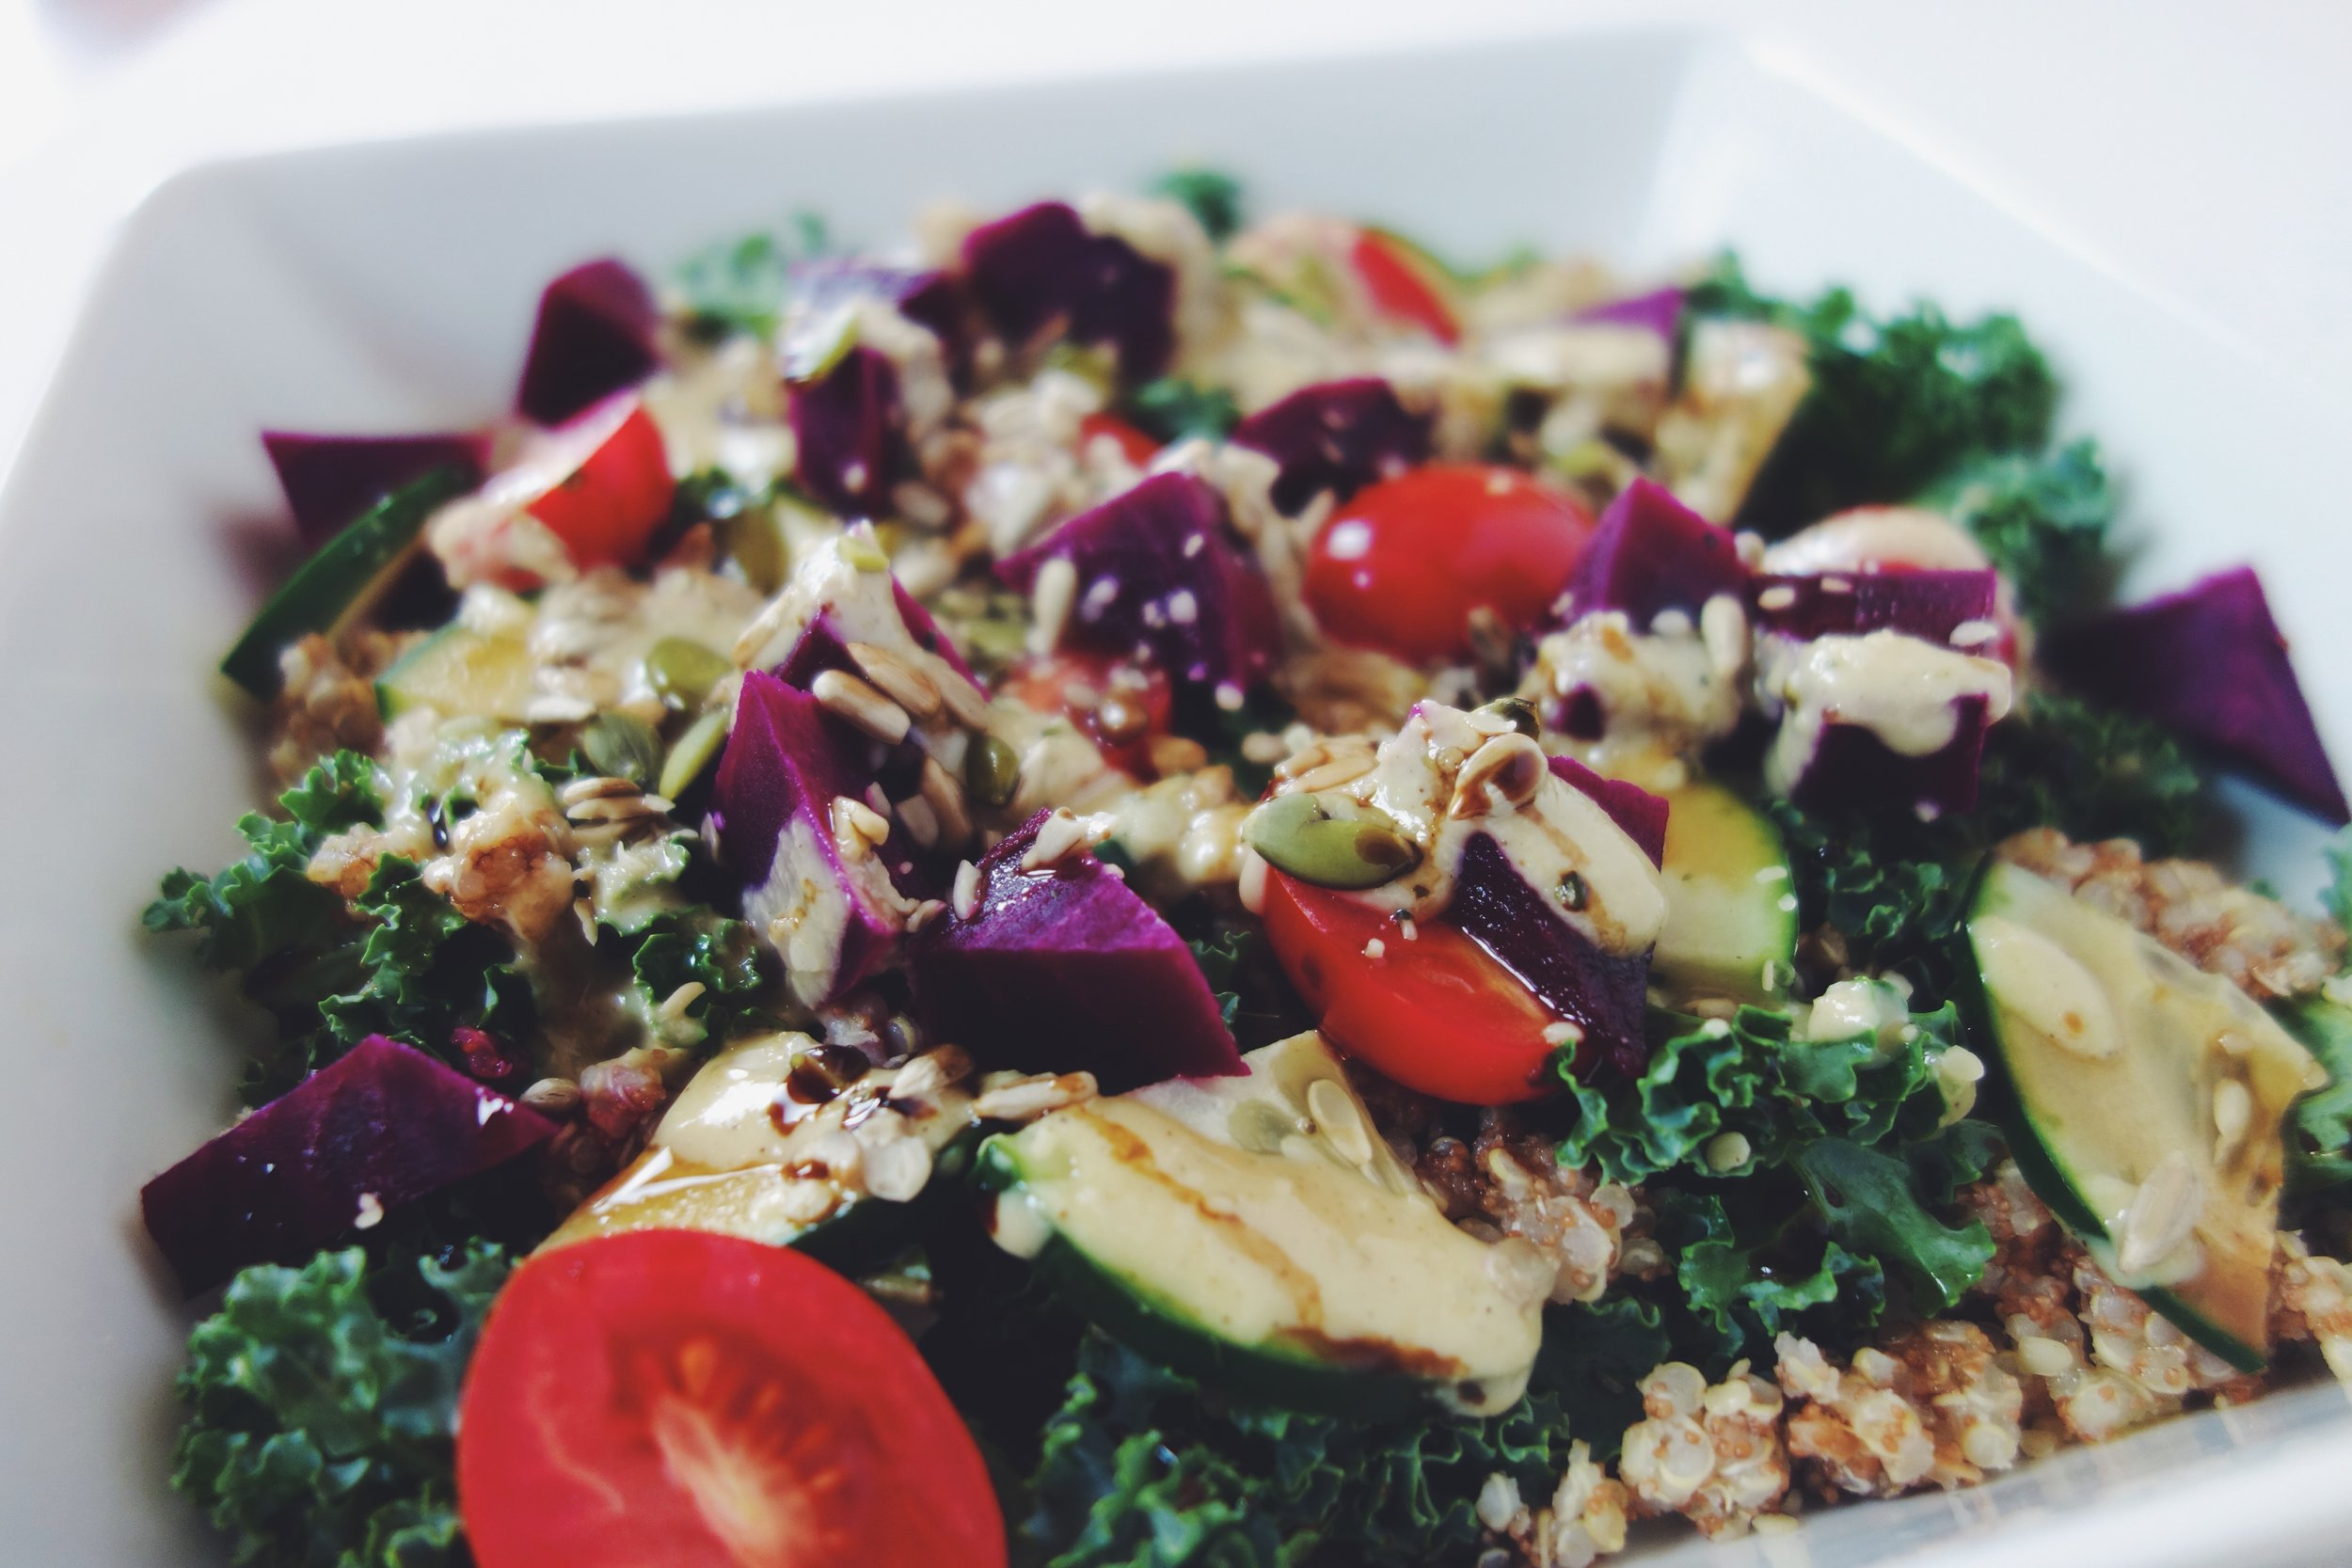 Kale, quinoa, cucumbers, cherry tomatoes, pickled beets, pumpkin & hemp seeds, drizzled with a blend of tahini, lemon juice, and olive oil. Uffda.